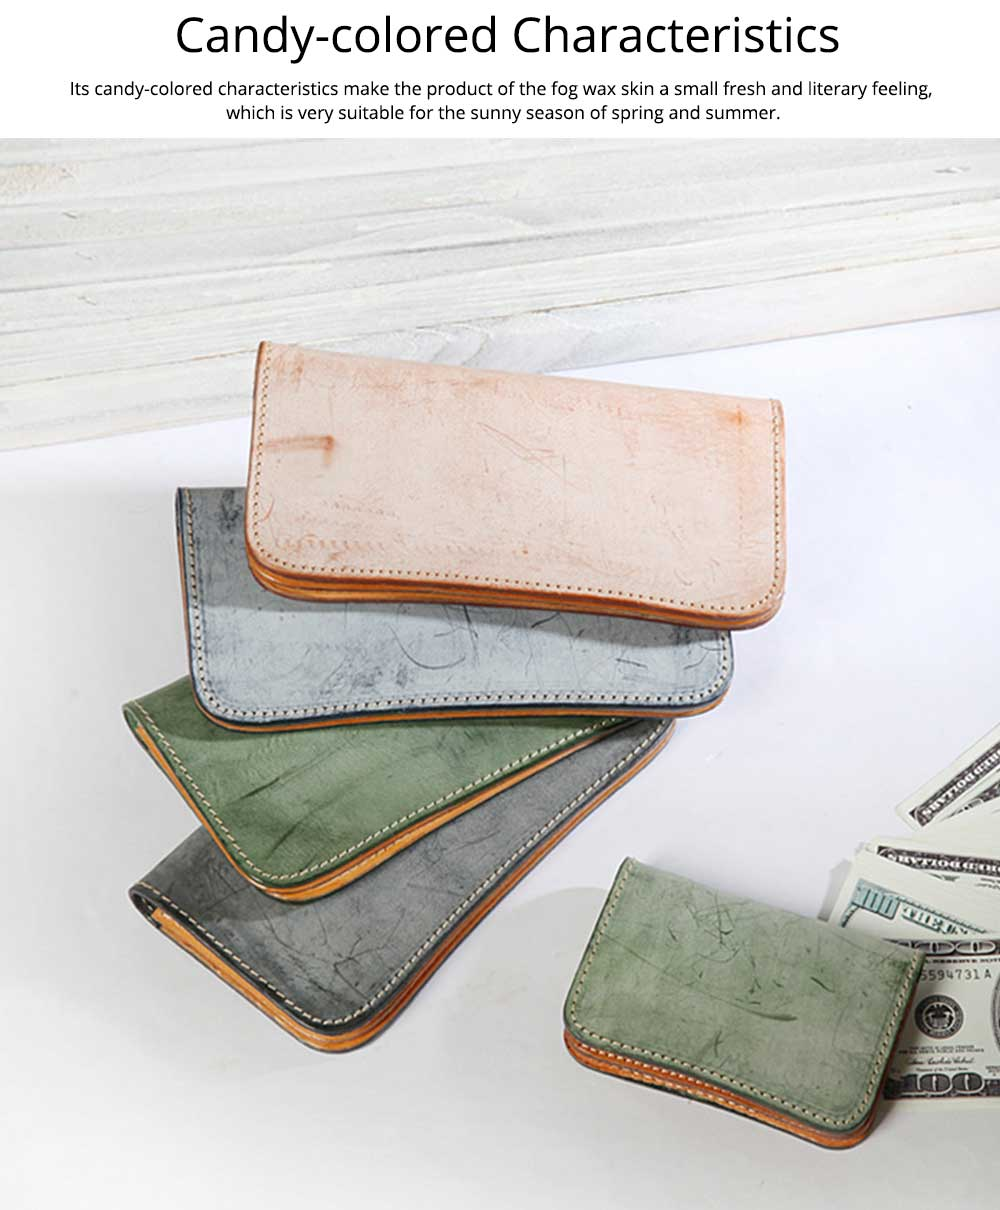 New Long Leather Clutch, Fashion Vegetable Tanned Purse for Ladies, Handmade Suede Leather Purse 6